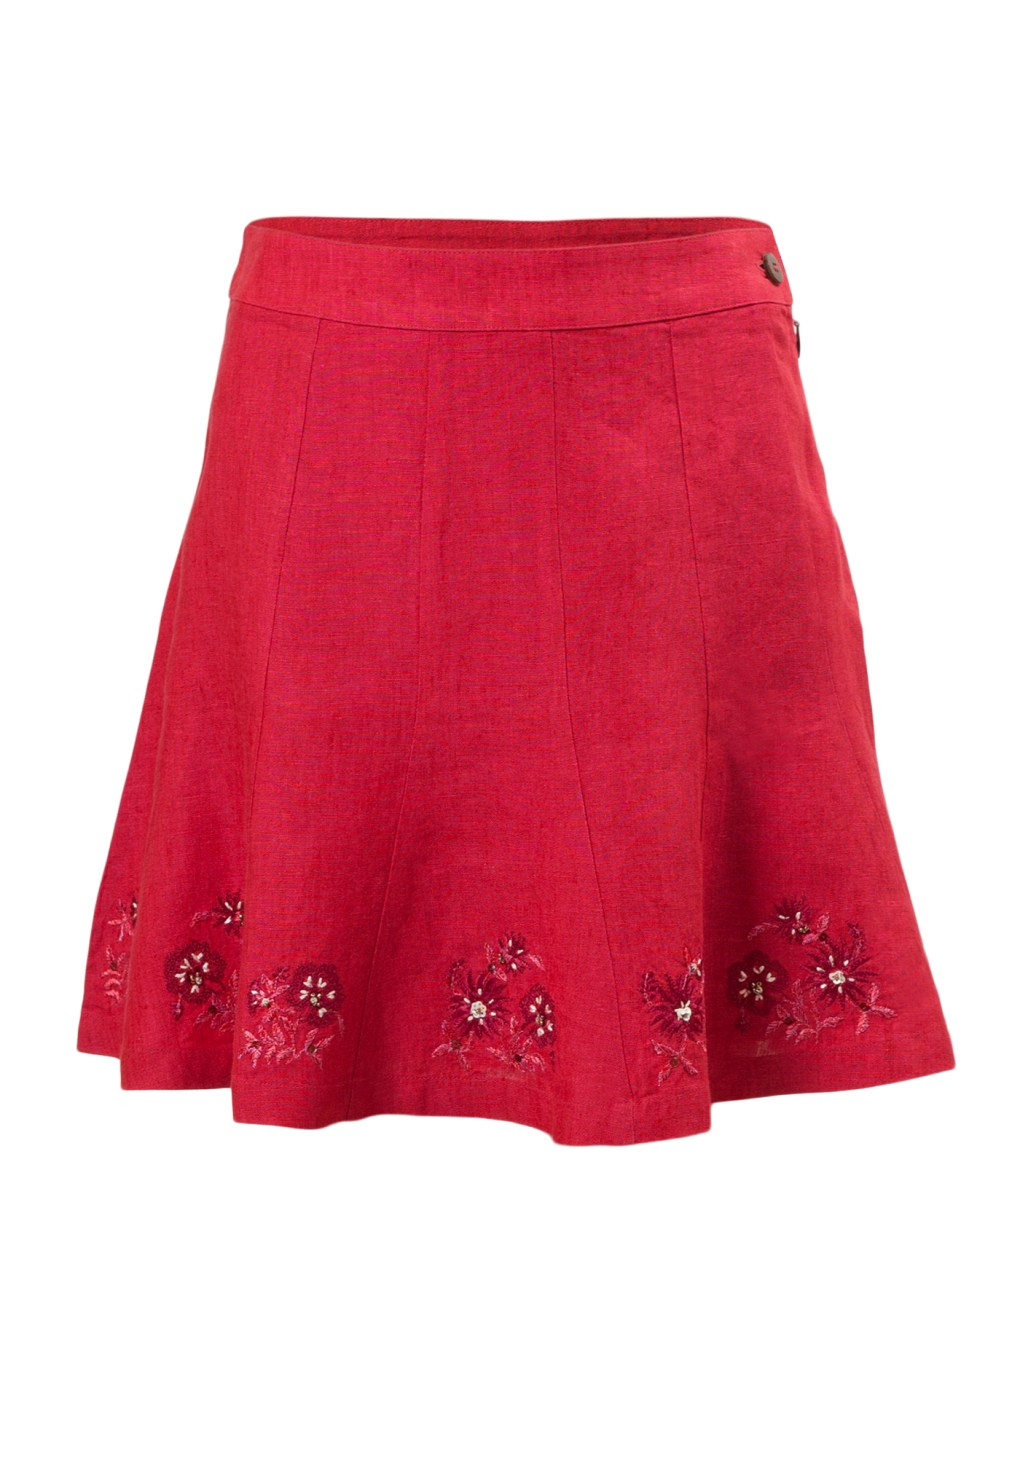 Raspberry Ice Girls Skirt in Fuchsia Linen with embroidery along hemline brought to you by MINC petite